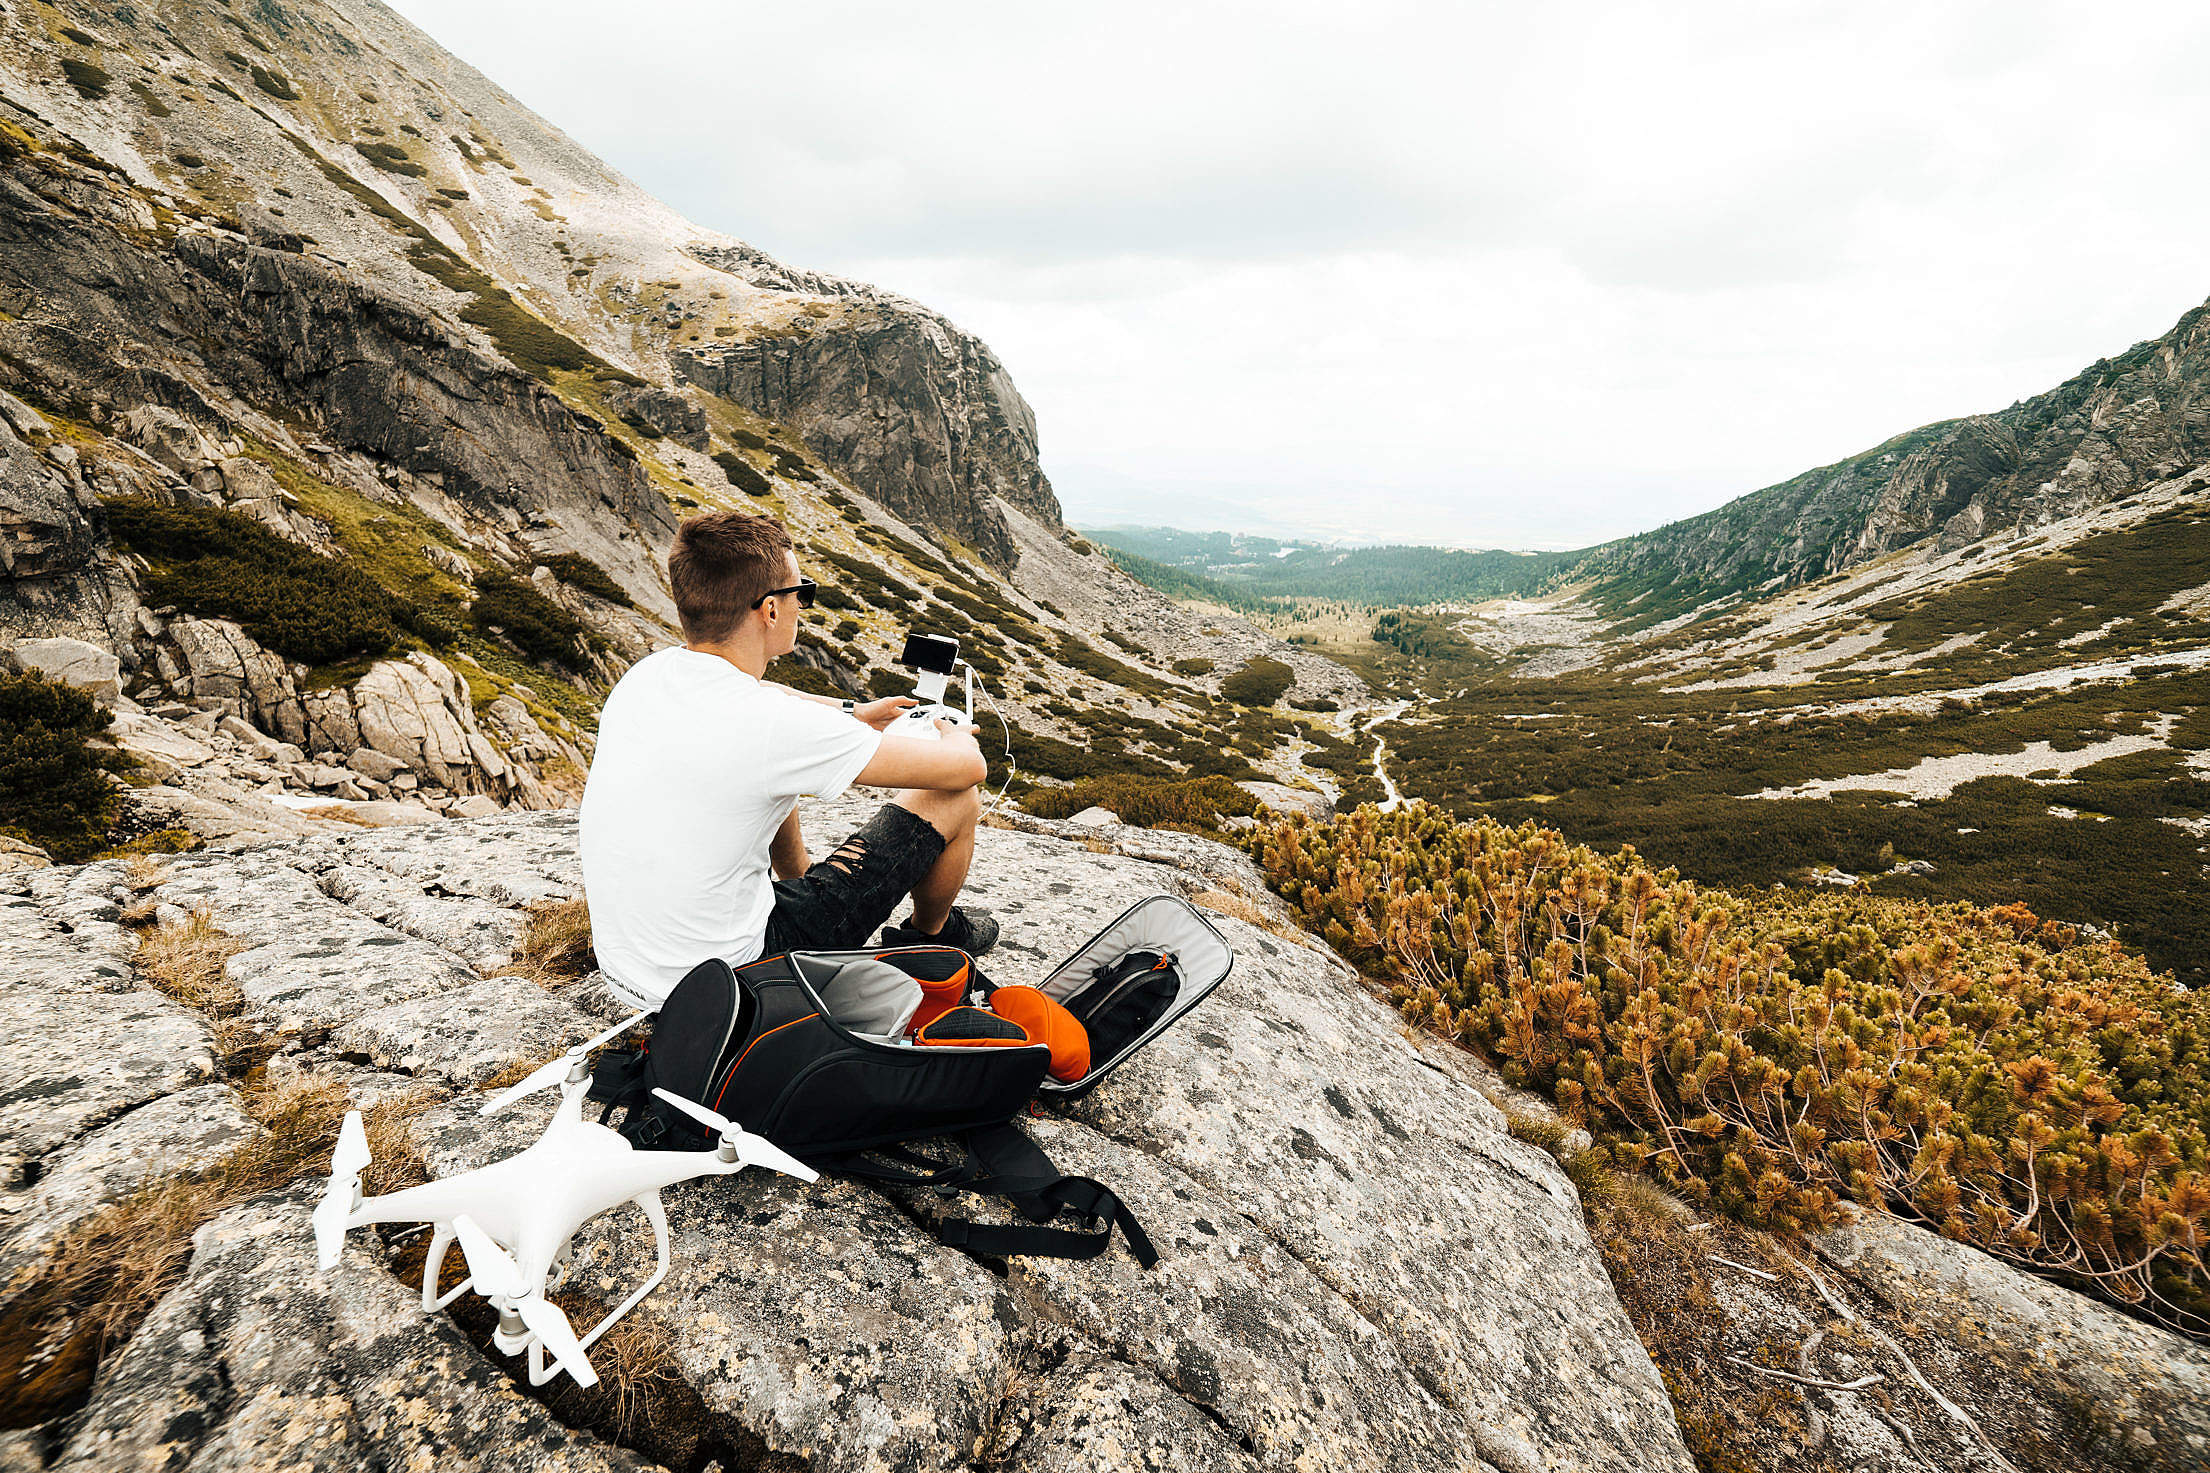 Man Setting Up a Drone for Aerial Photography in Mountains